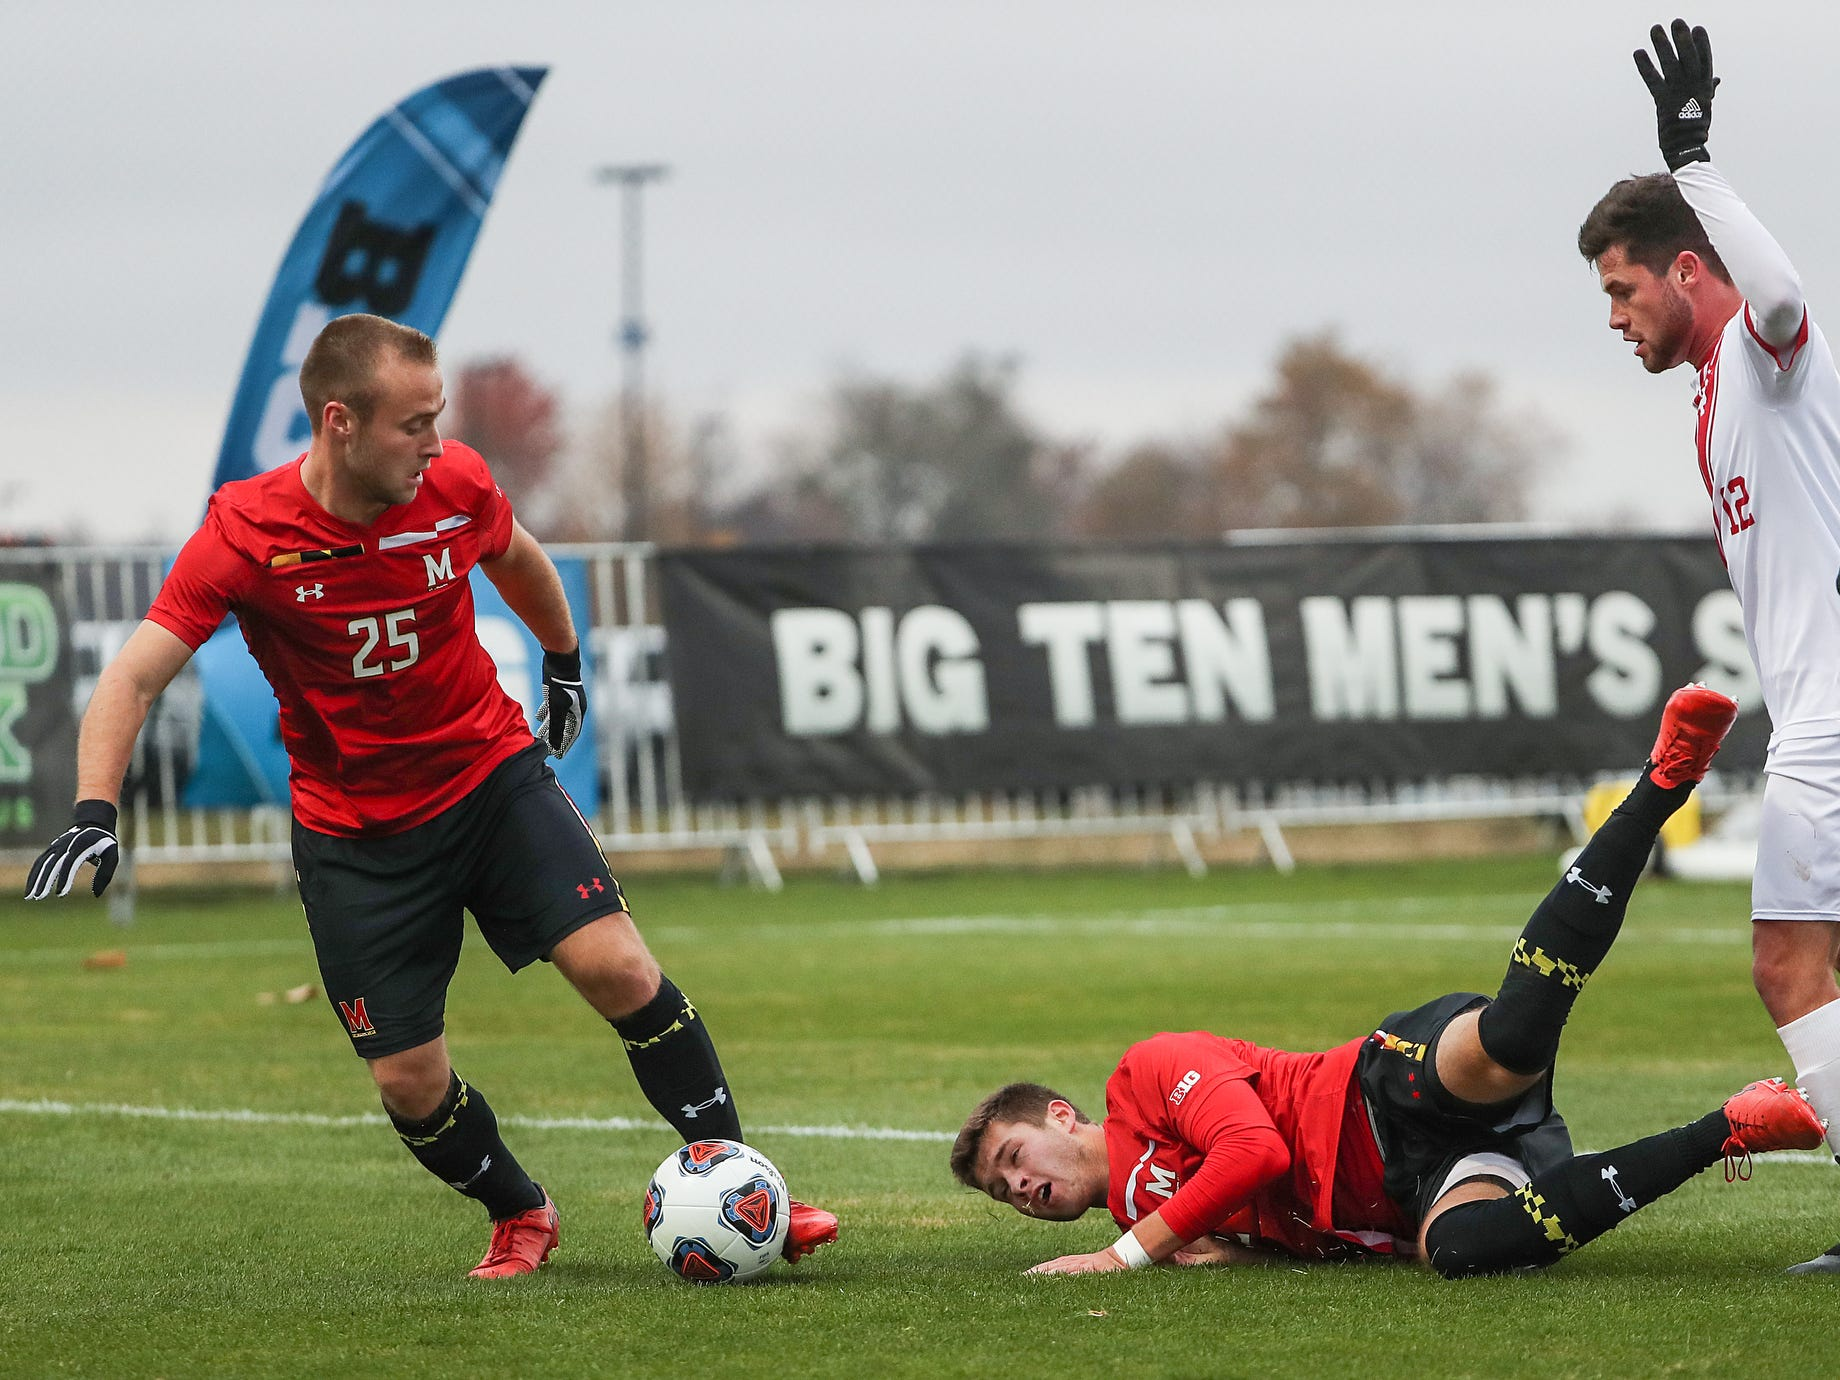 From left, Maryland Terrapins defender Ben Di Rosa (25) takes over possession as Brett St. Martin (12) hits the ground after tangling with Indiana Hoosiers Austin Panchot (12) during the first half of Big Ten semifinals at Grand Park in Westfield, Ind., Friday, Nov. 9, 2018. Indiana and Maryland tied 1-1, with the Hoosiers advancing in penalty kicks, 4-3.